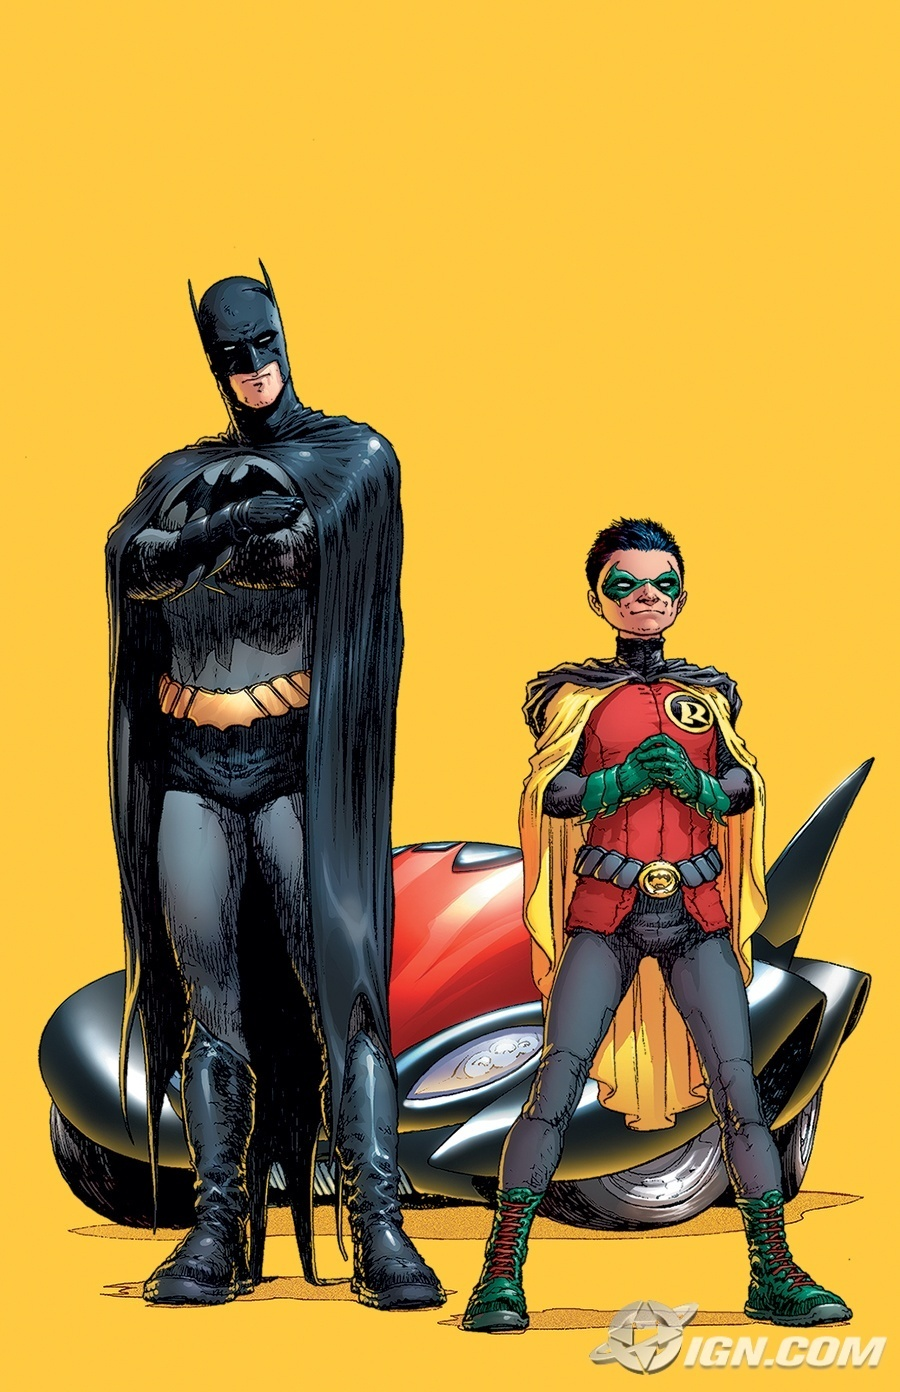 Dick Grayson as Batman, Damian Wayne as Robin